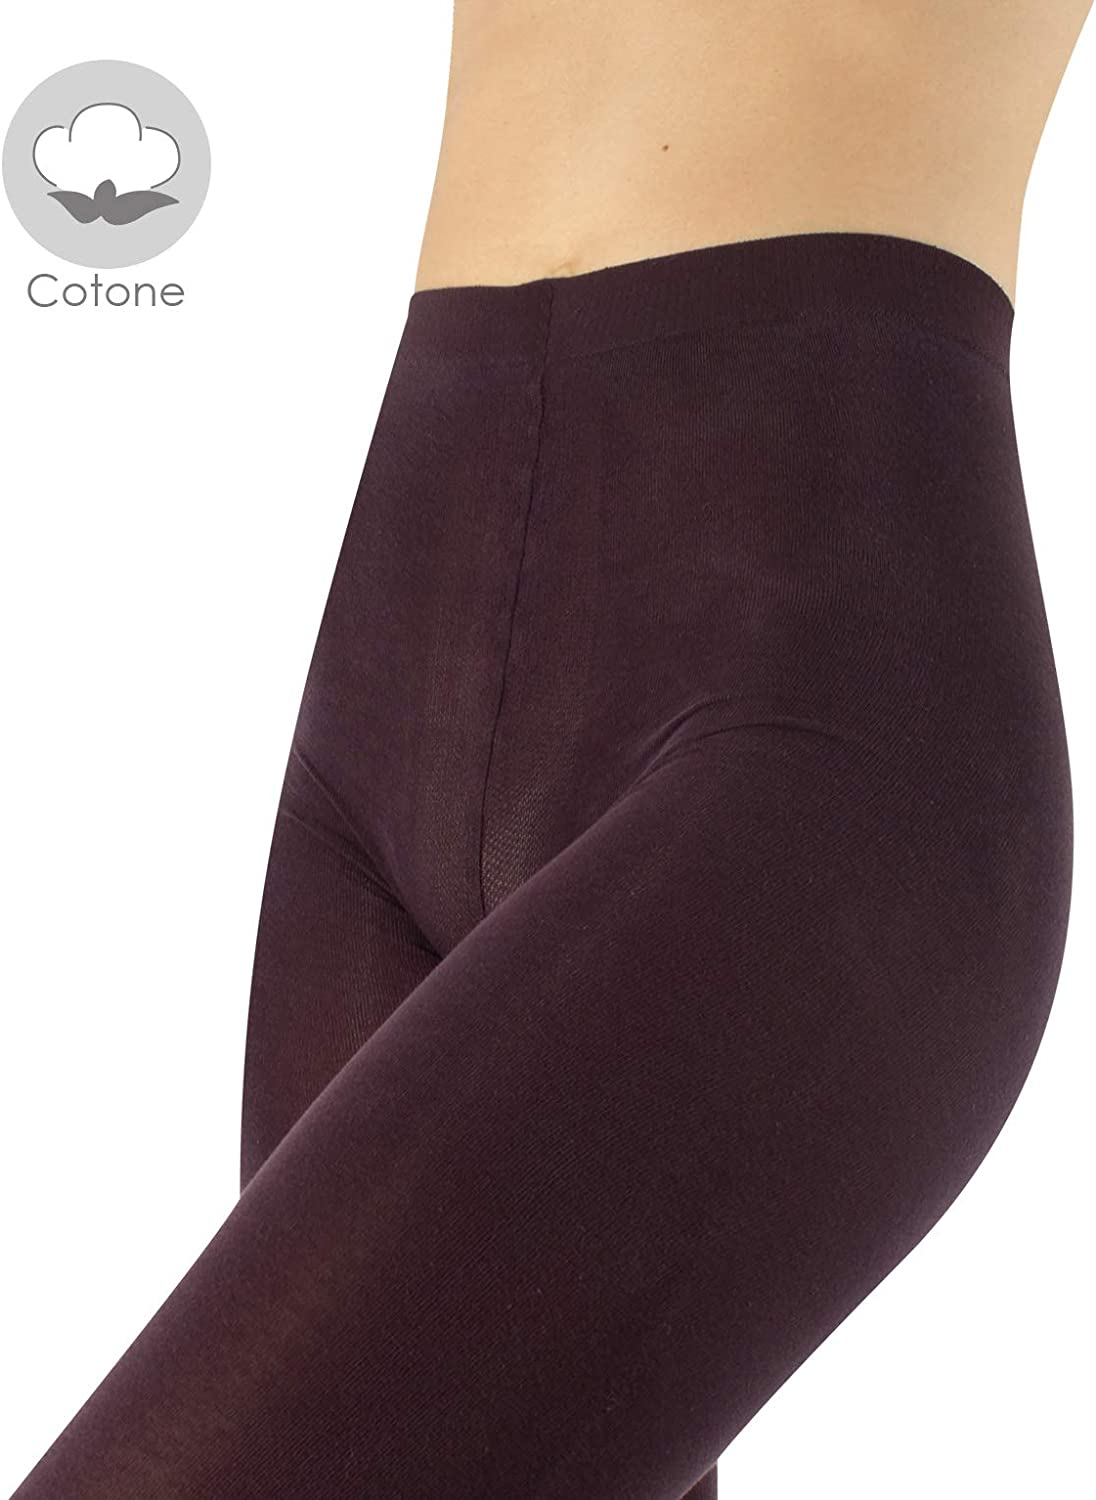 Wine S//M Made in Italy Black 100 DEN L//XL CALZITALY Cotton Thick Tights for Winter Daily Use